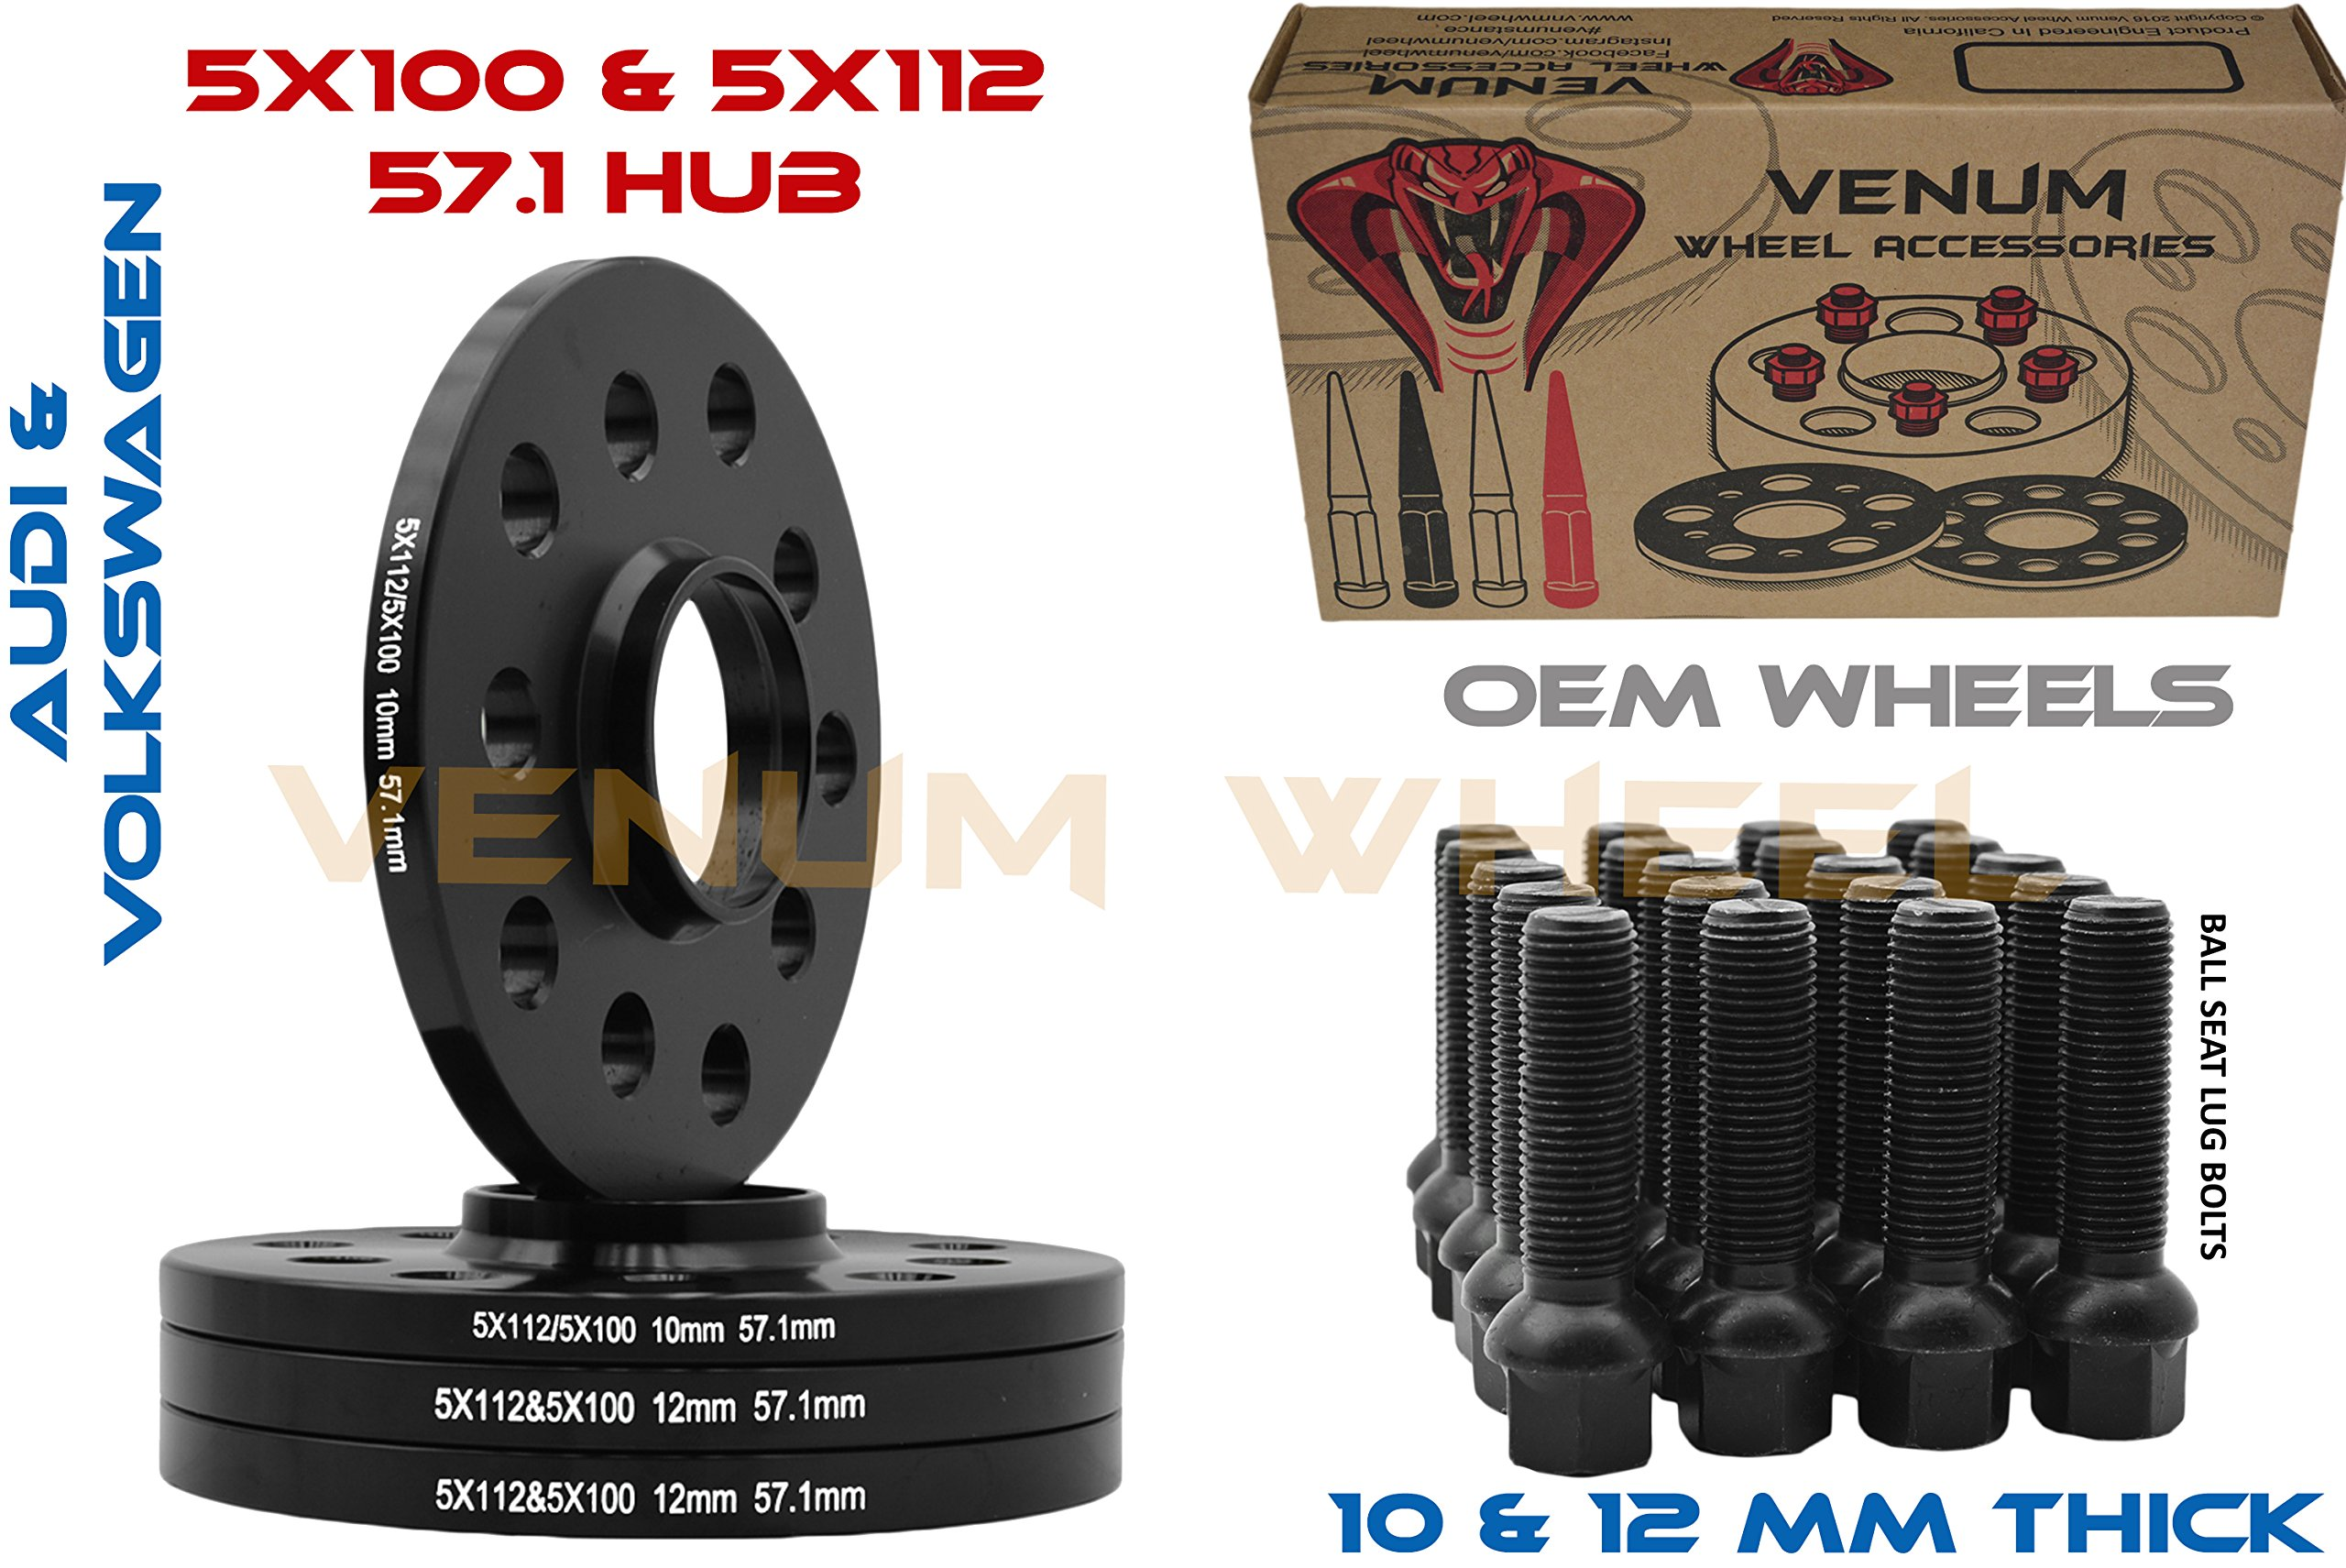 4pc Staggered Set of 10mm and 12mm Hubcentric Black Audi Volkswagen Wheels Spacers 57.1 HUB 5x100/5x112 Bolt Pattern+ 20 Black Ball Seat Lug Bolts